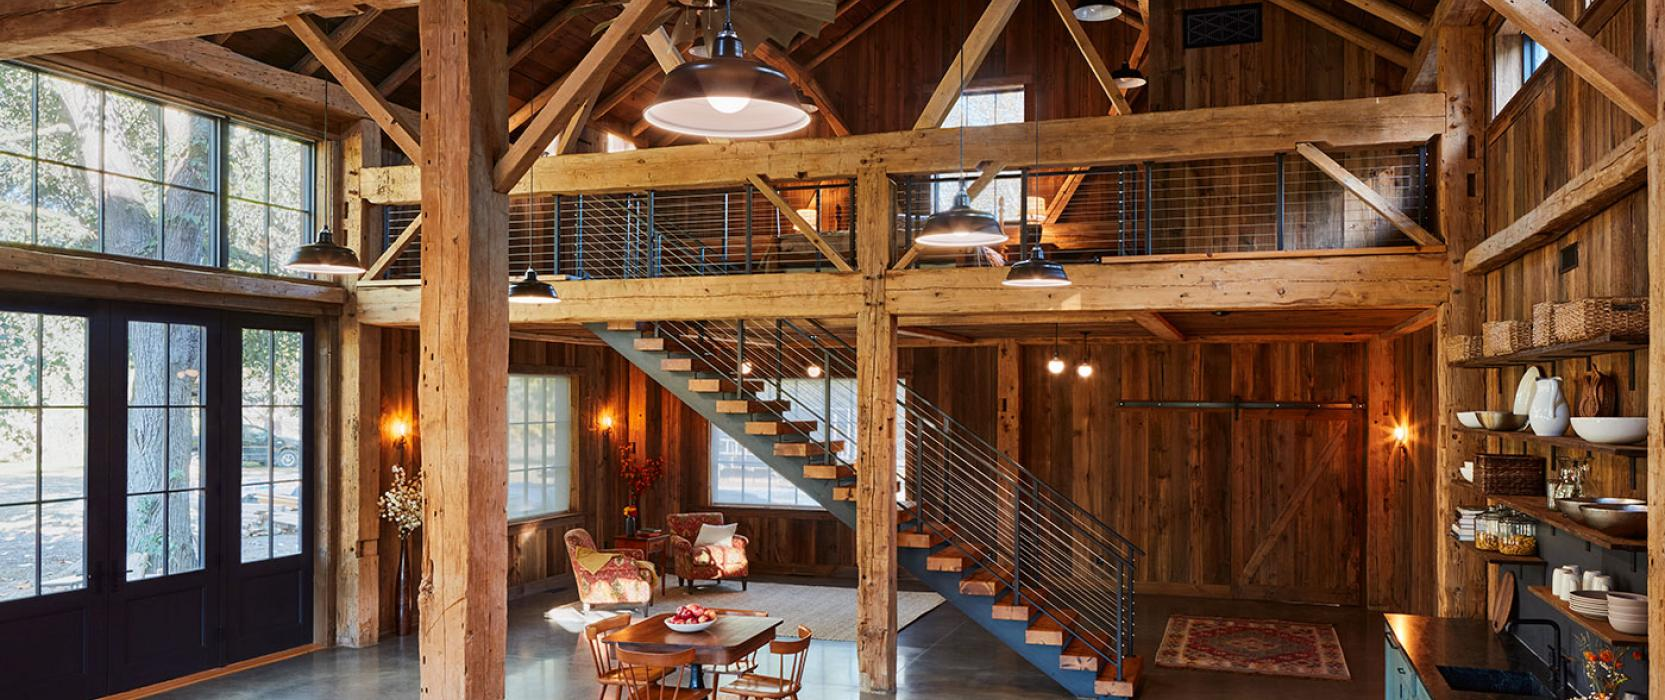 Use of exposed beams by Catherine Truman Architects